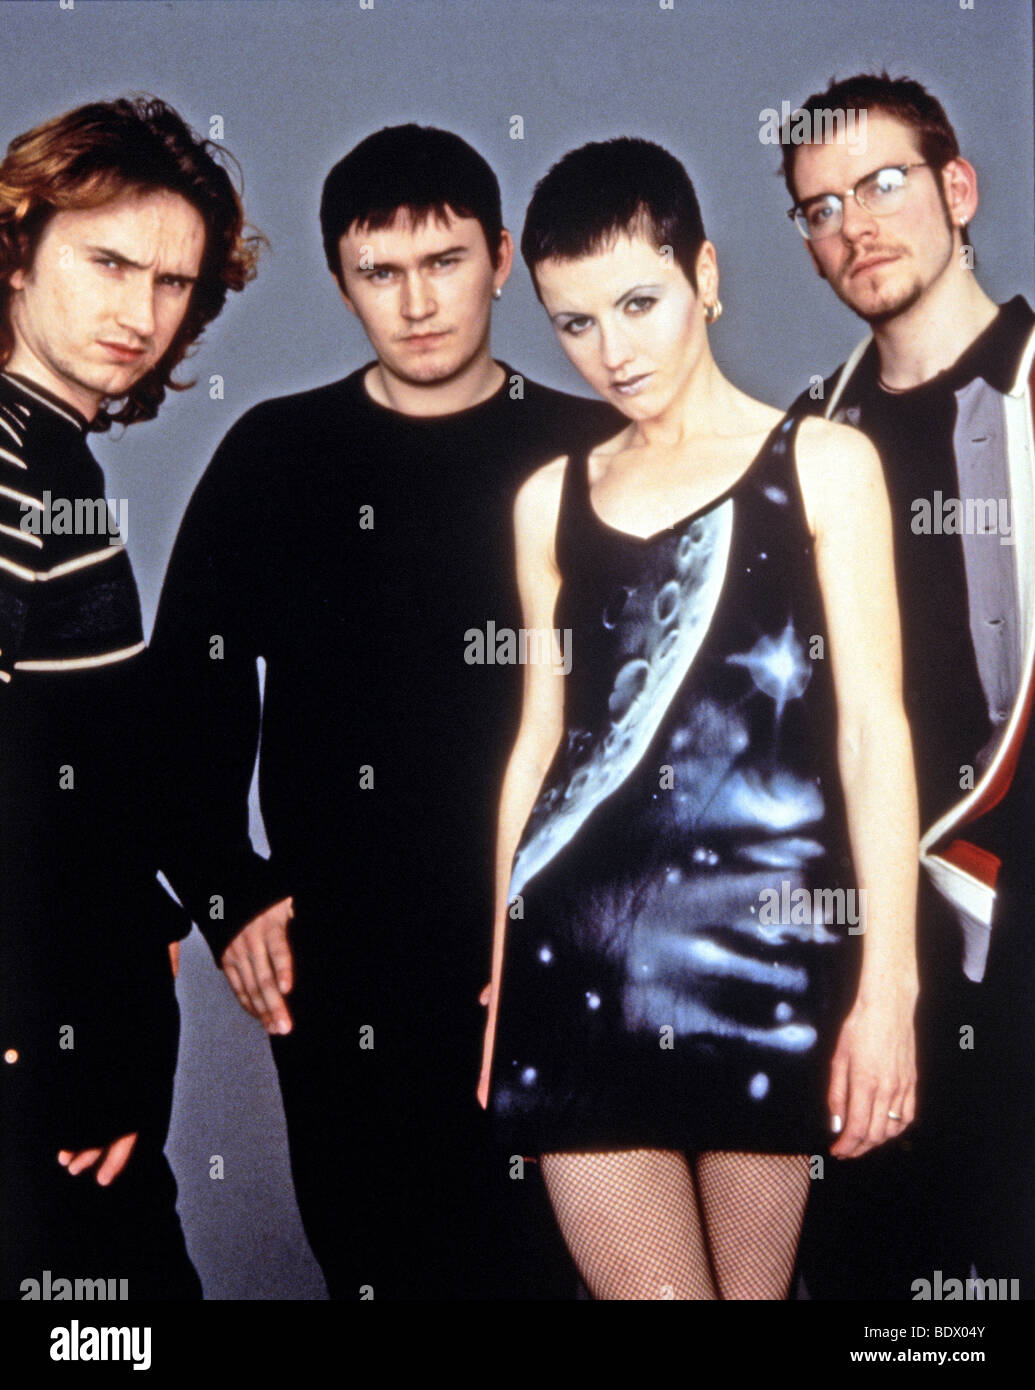 HOLA SOY EXTRATERRESTRE, ME ENSEÑAS ? - Página 40 The-cranberries-promotional-photo-of-irish-rock-group-with-dolores-BDX04Y